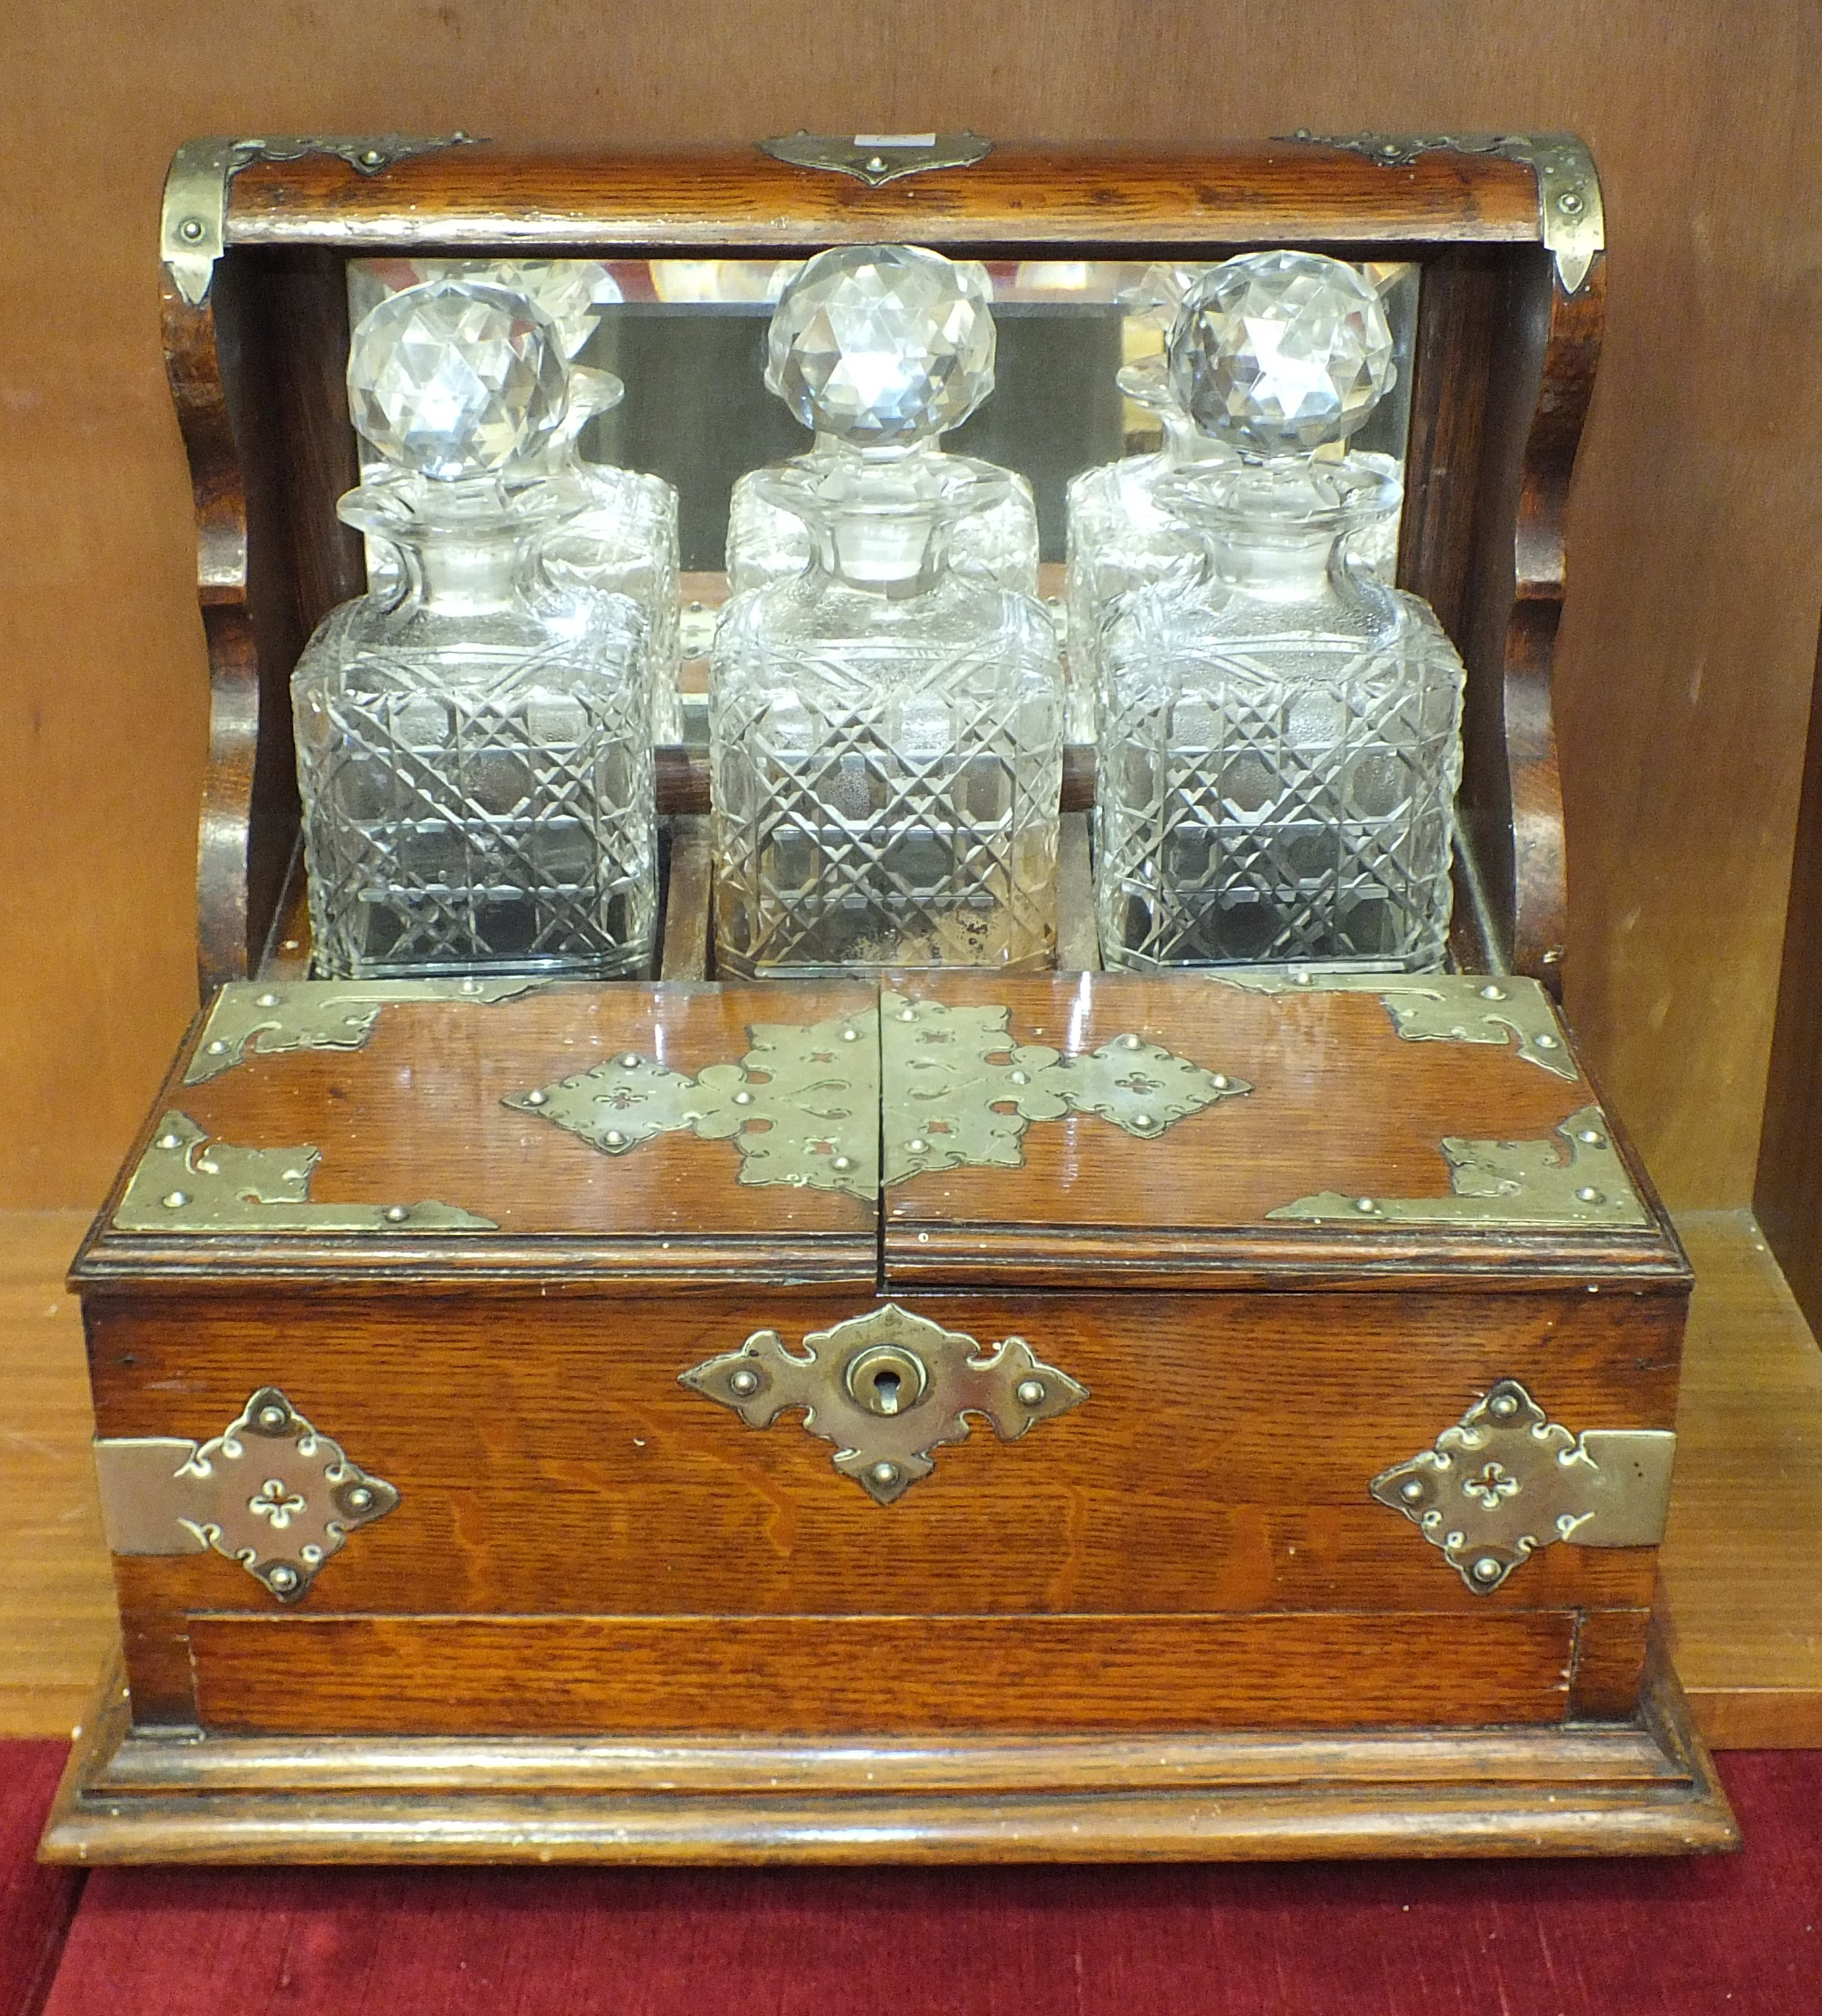 Lot 70 - An Edwardian oak Tantalus with plated mounts and compartments for glasses, 33cm high, 38cm wide.